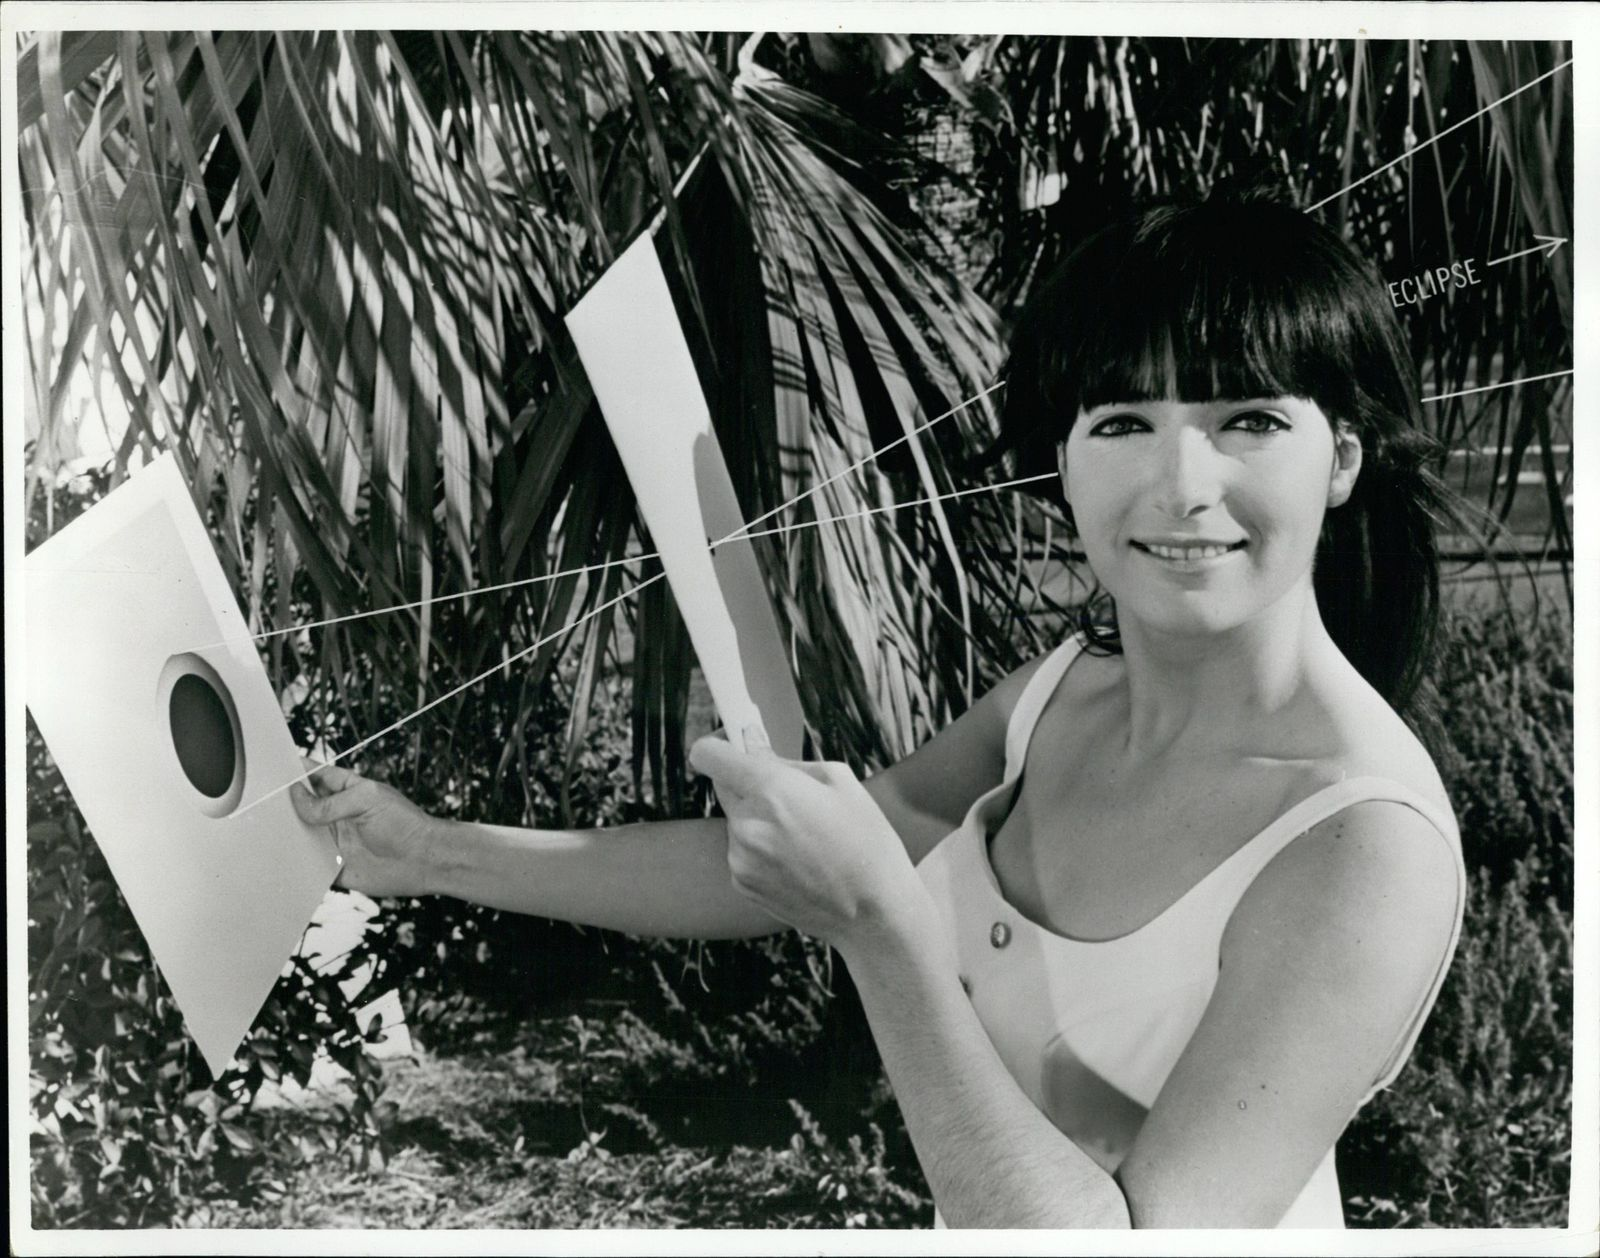 Mar 03 1970 Total solar eclipse To construct the approved eclipse viewer take two pieces of wh